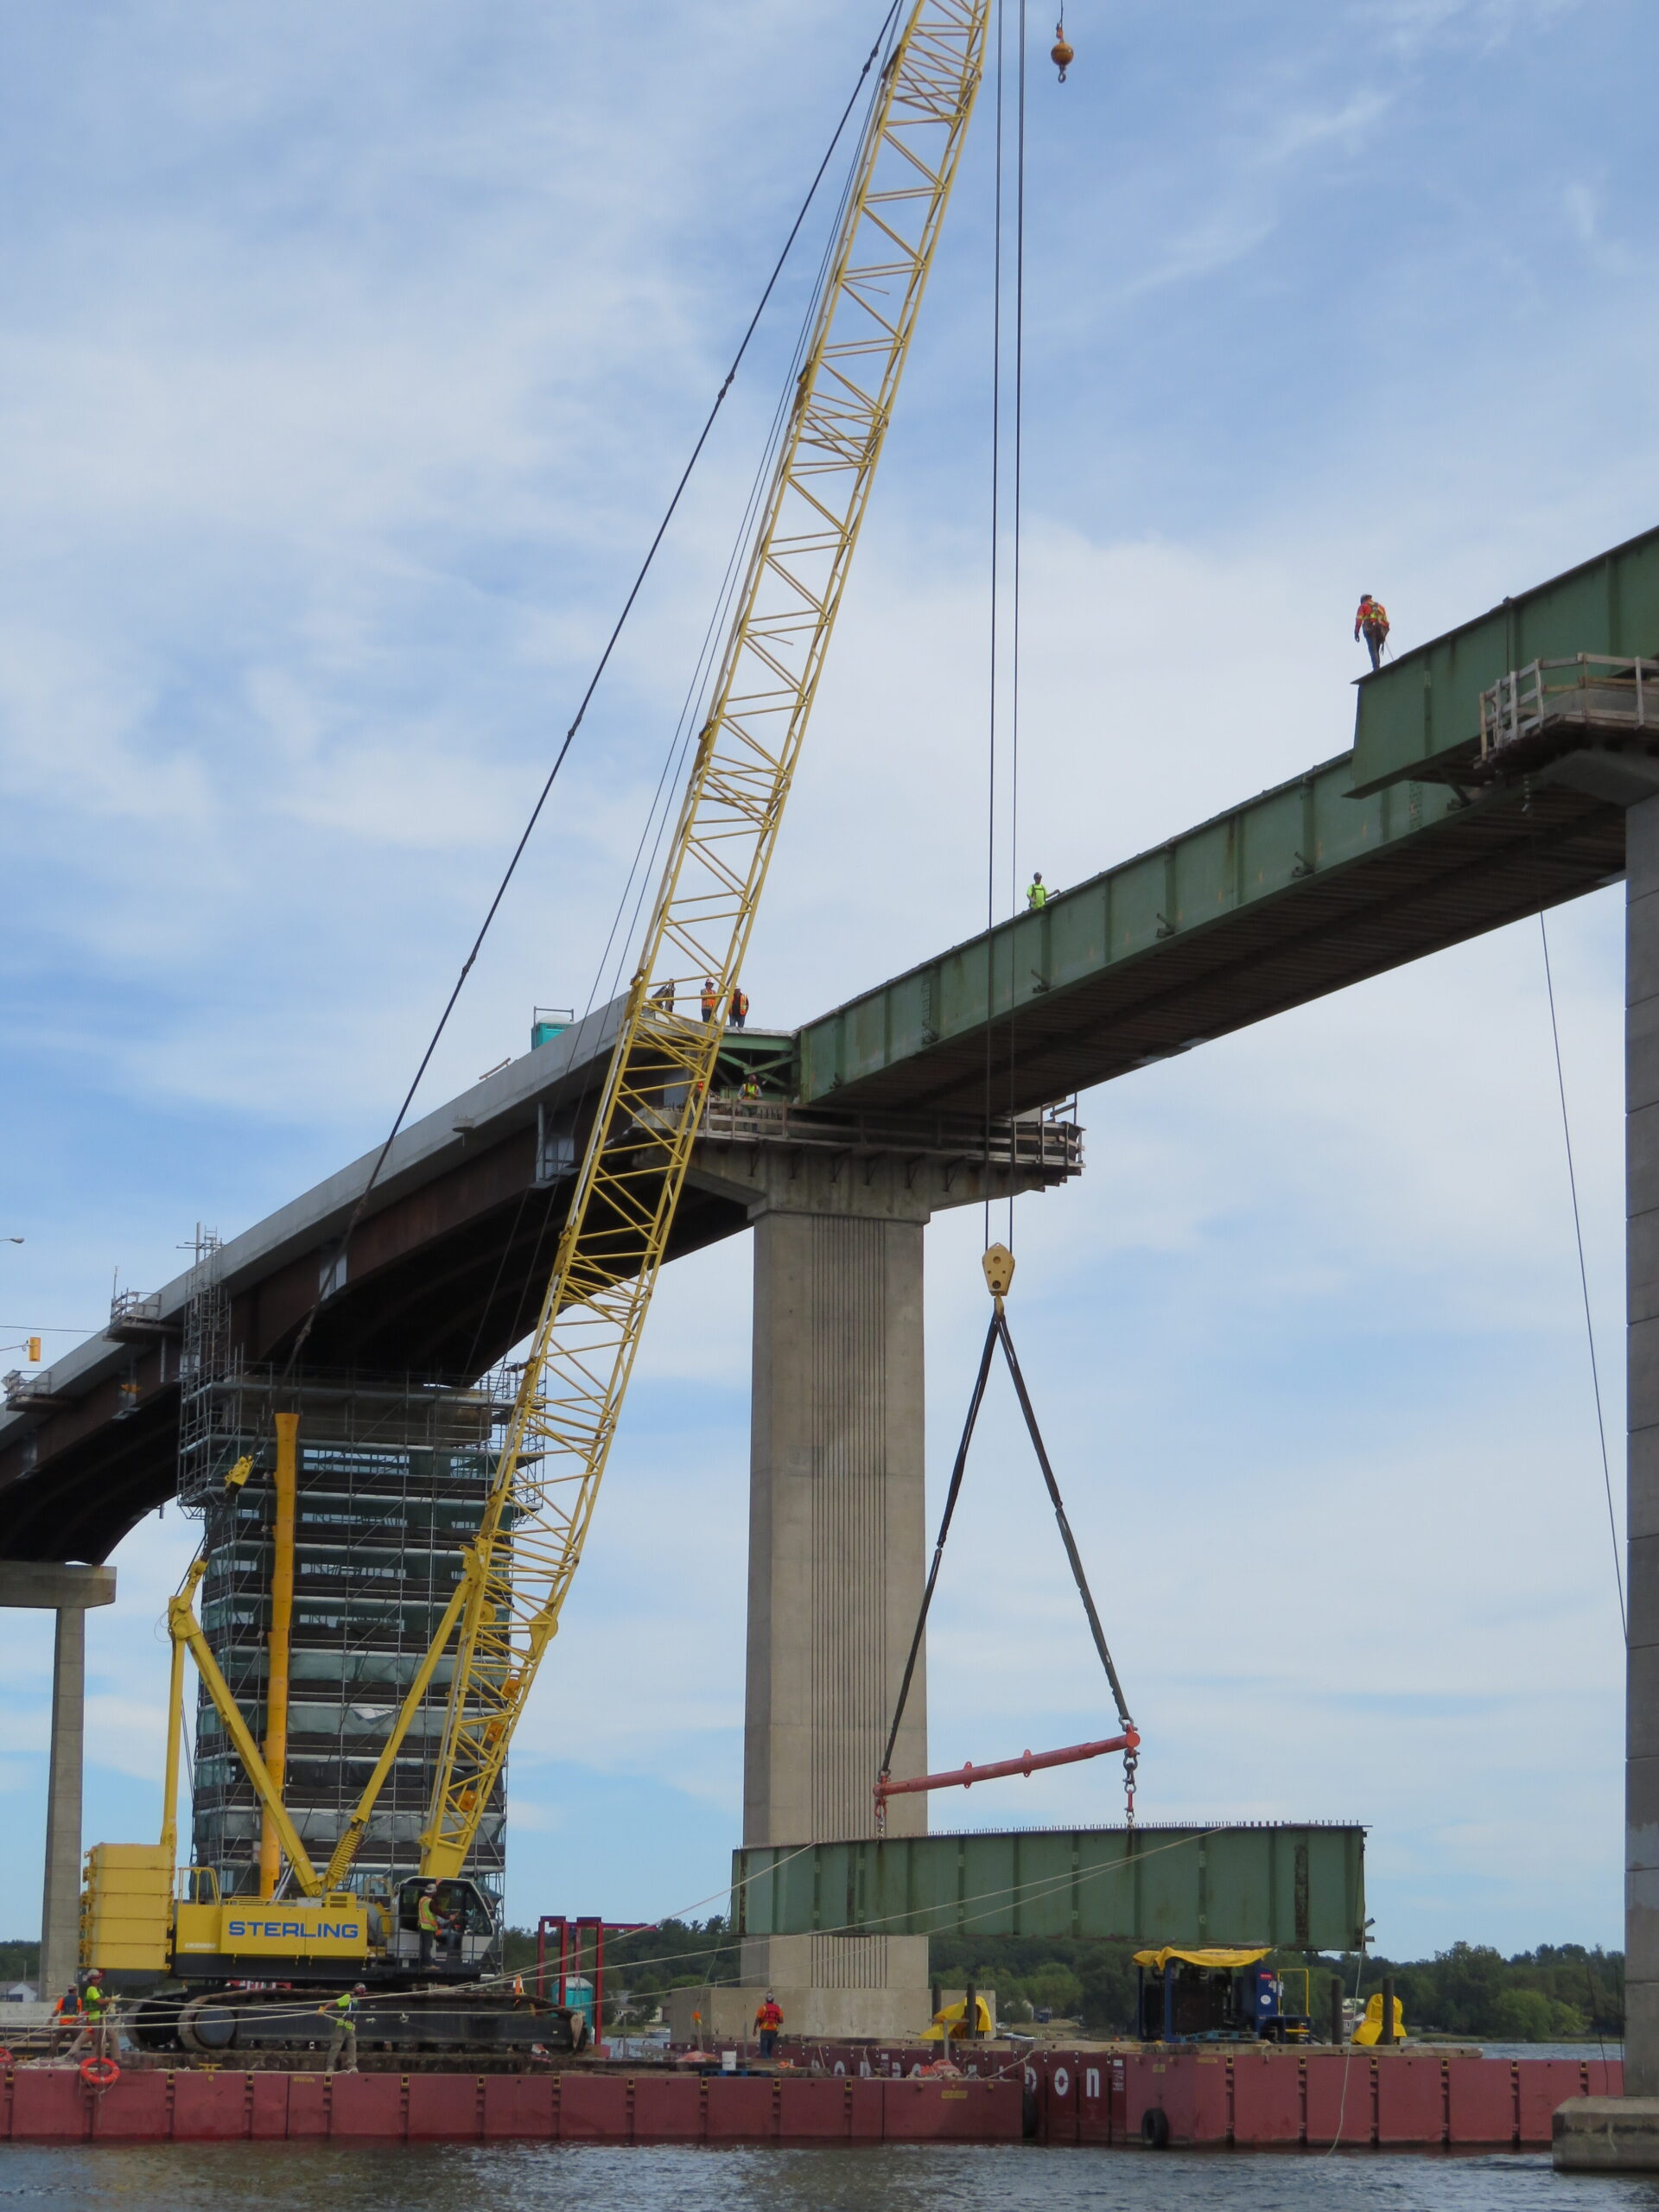 Lowering the girder section onto the barge with the 200-ton crane